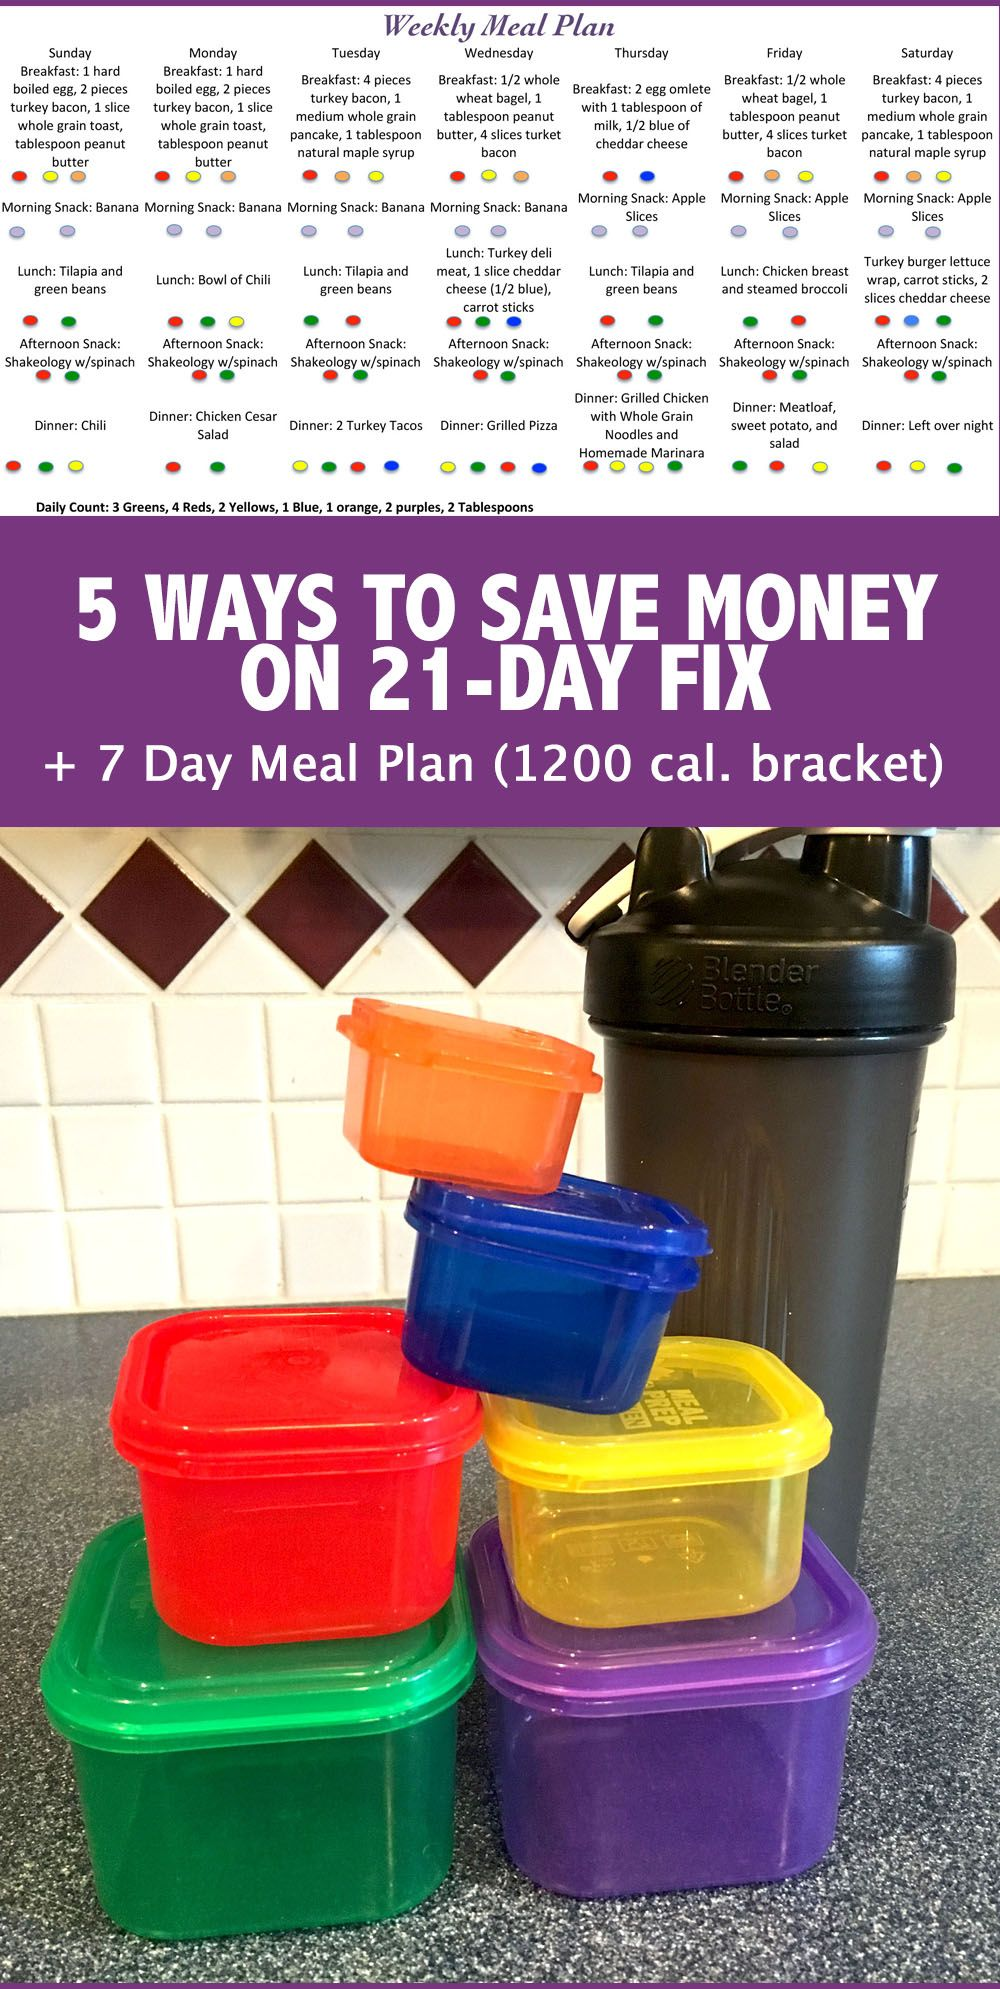 94a73a31472756bf94b981c5179d8682.jpg & Here are my 5 no-fail ways to save money on 21-Day Fix. Plus check ...